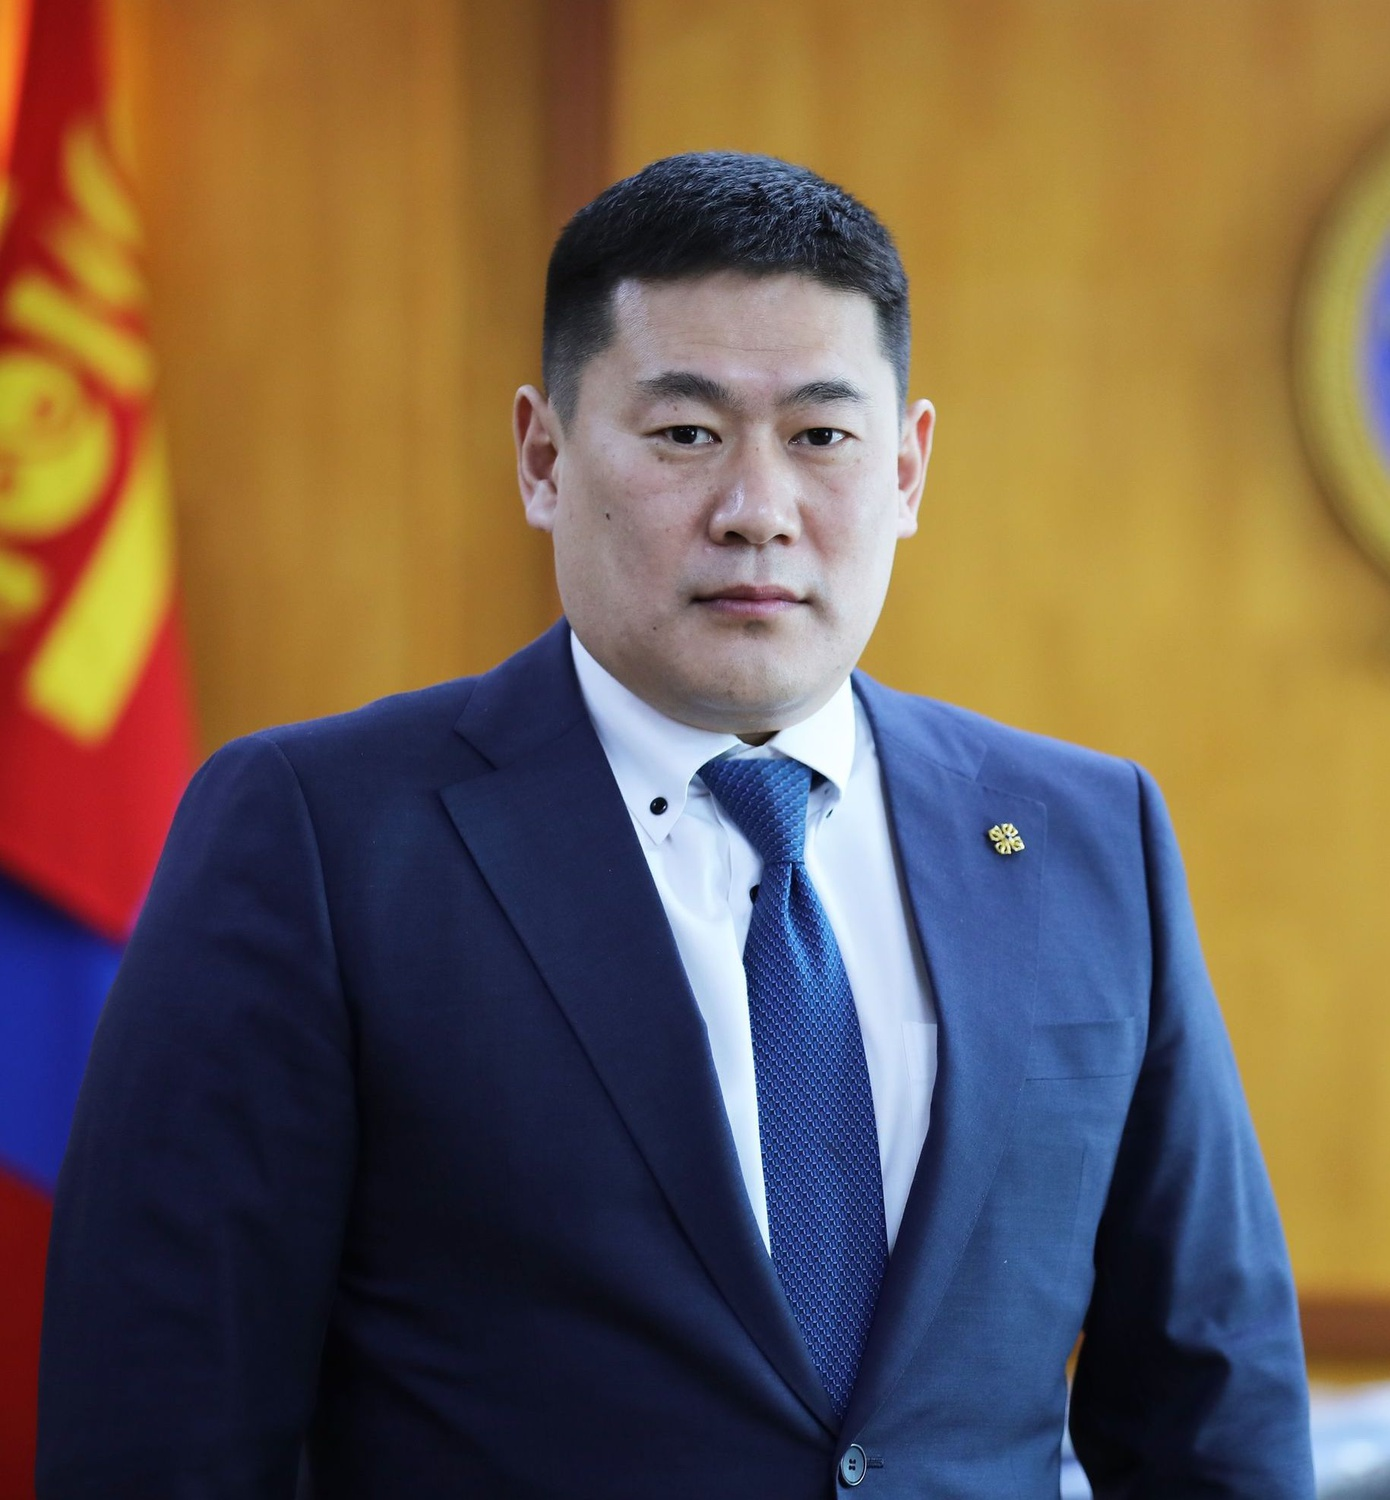 Harvard Kennedy School alumnus Oyun-Erdene Luvsannamsrai became Prime Minister of Mongolia on Jan. 27.